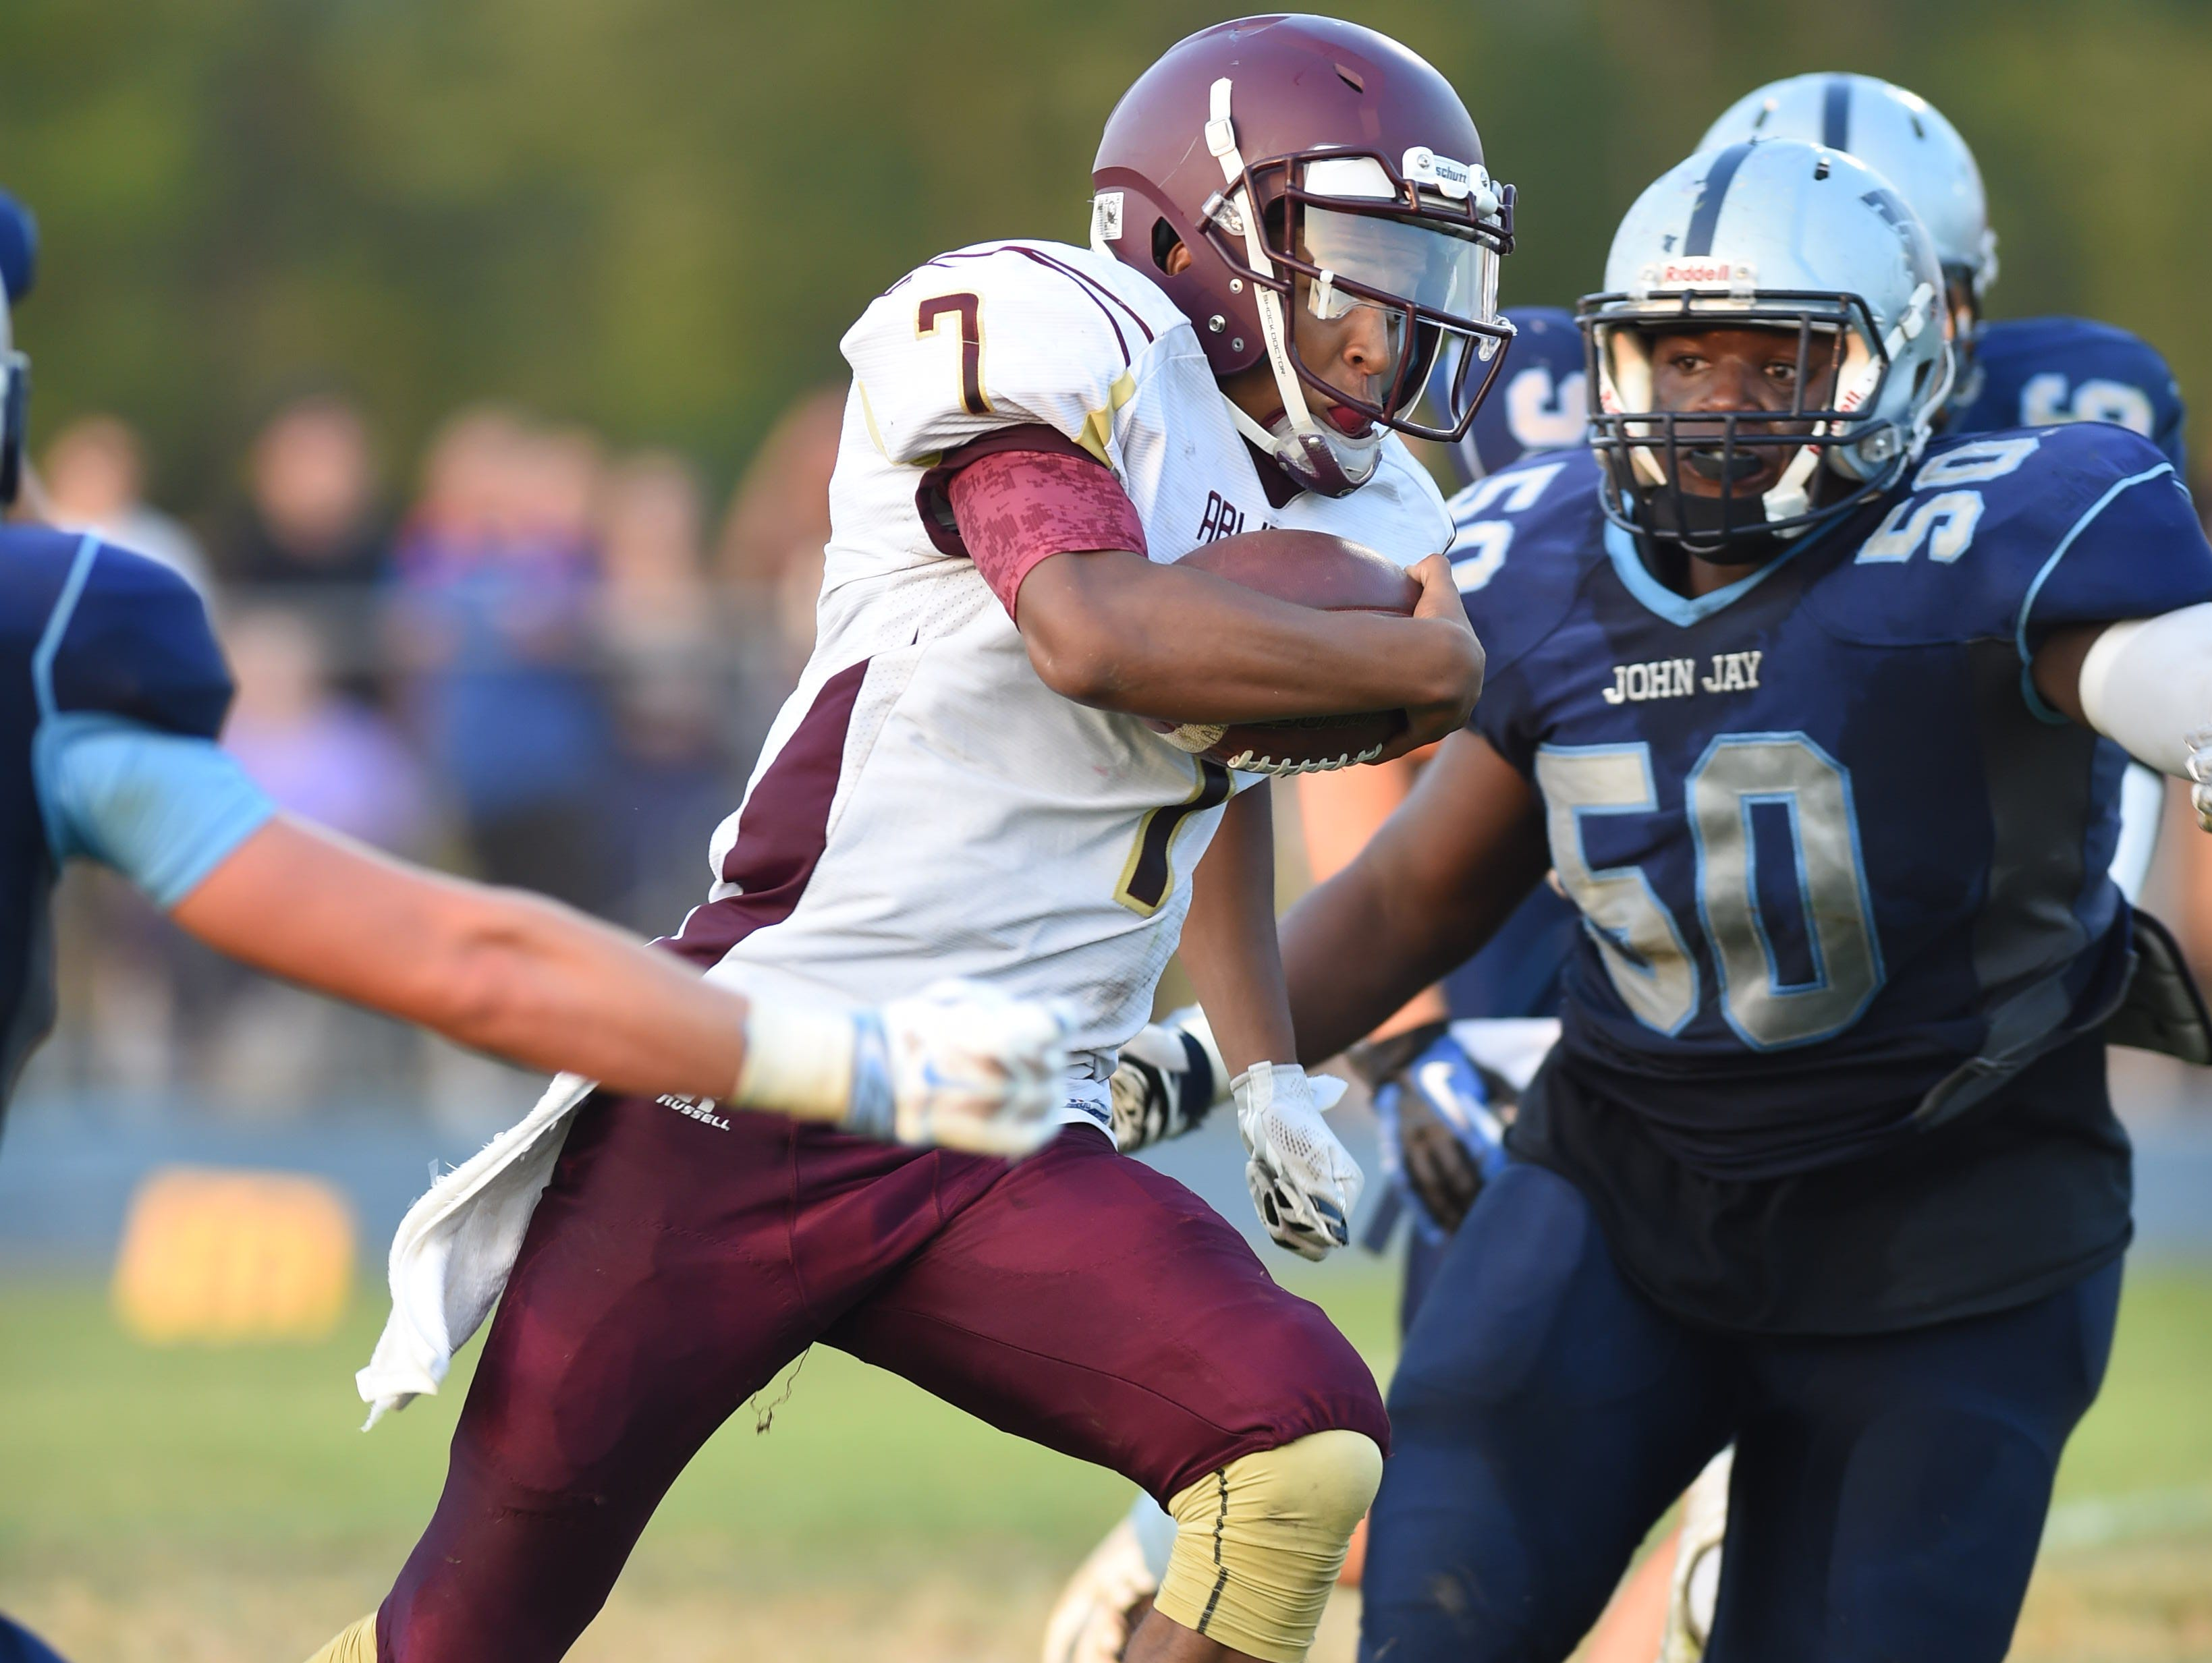 Arlington High School's Justin Leigh runs through John Jay defenders during their game in Wiccopee on Sept. 18.